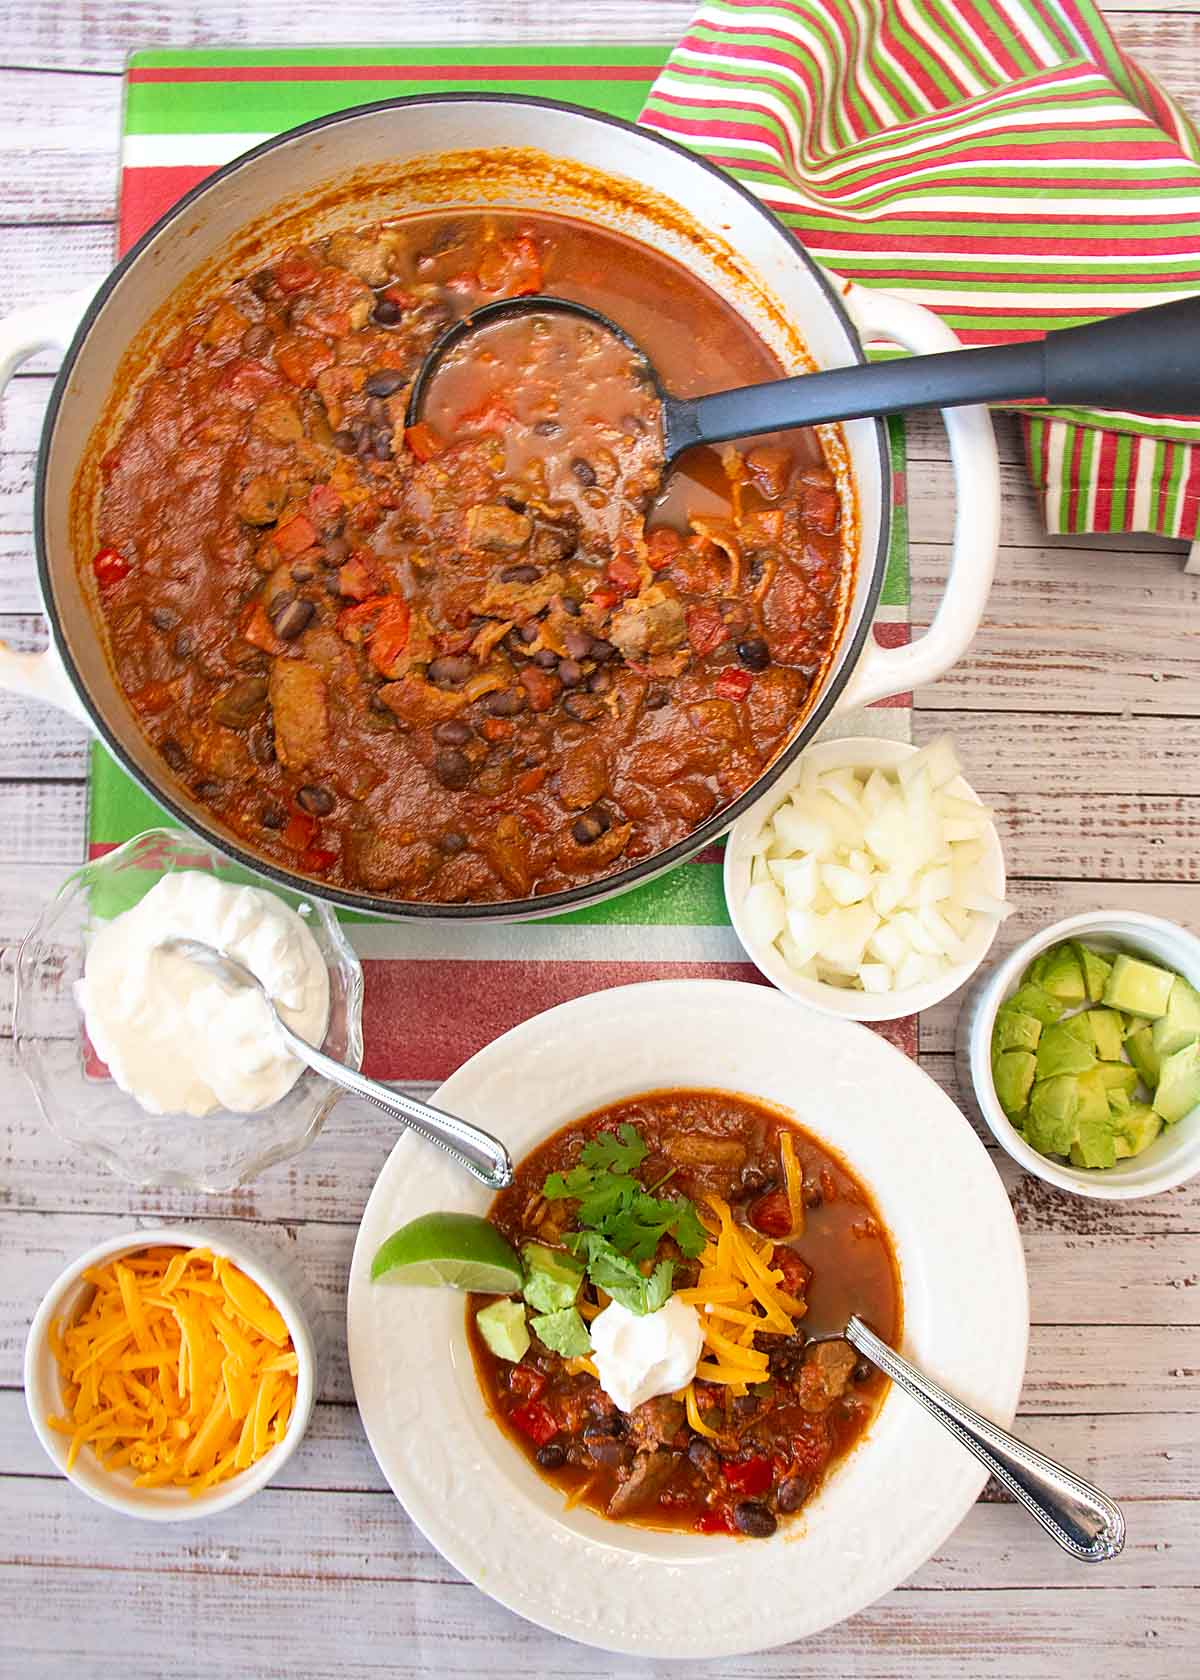 This savory Pork Chili blends flavorful spices, peppers and tomatoes with rich tender pork for a tasty lunch or dinner. But is it a chili or a stew?